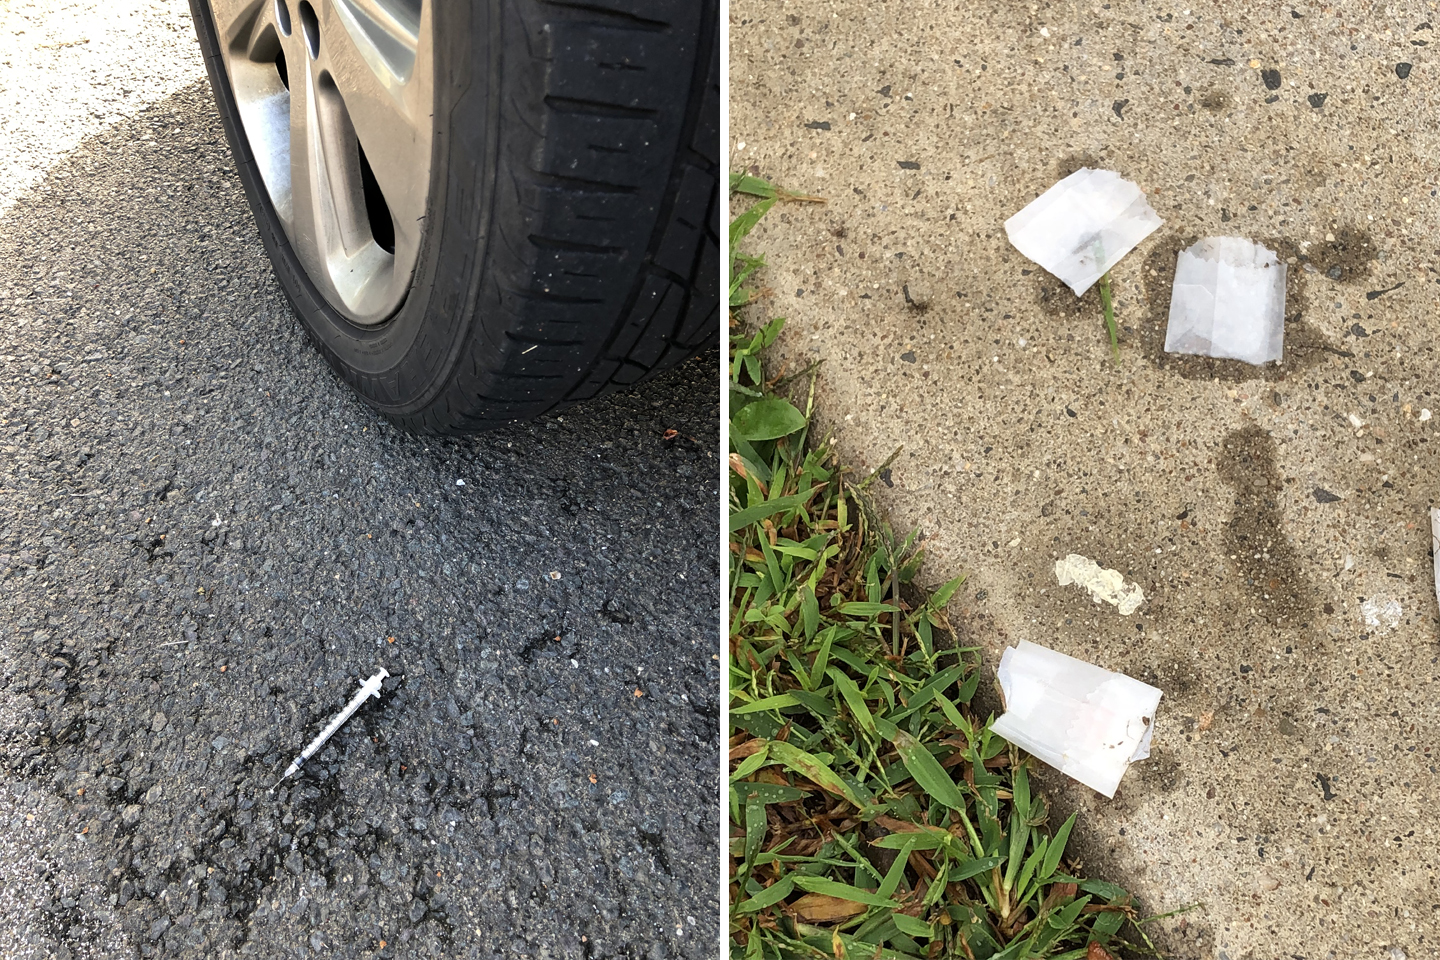 Should a discarded syringe also be the last straw?